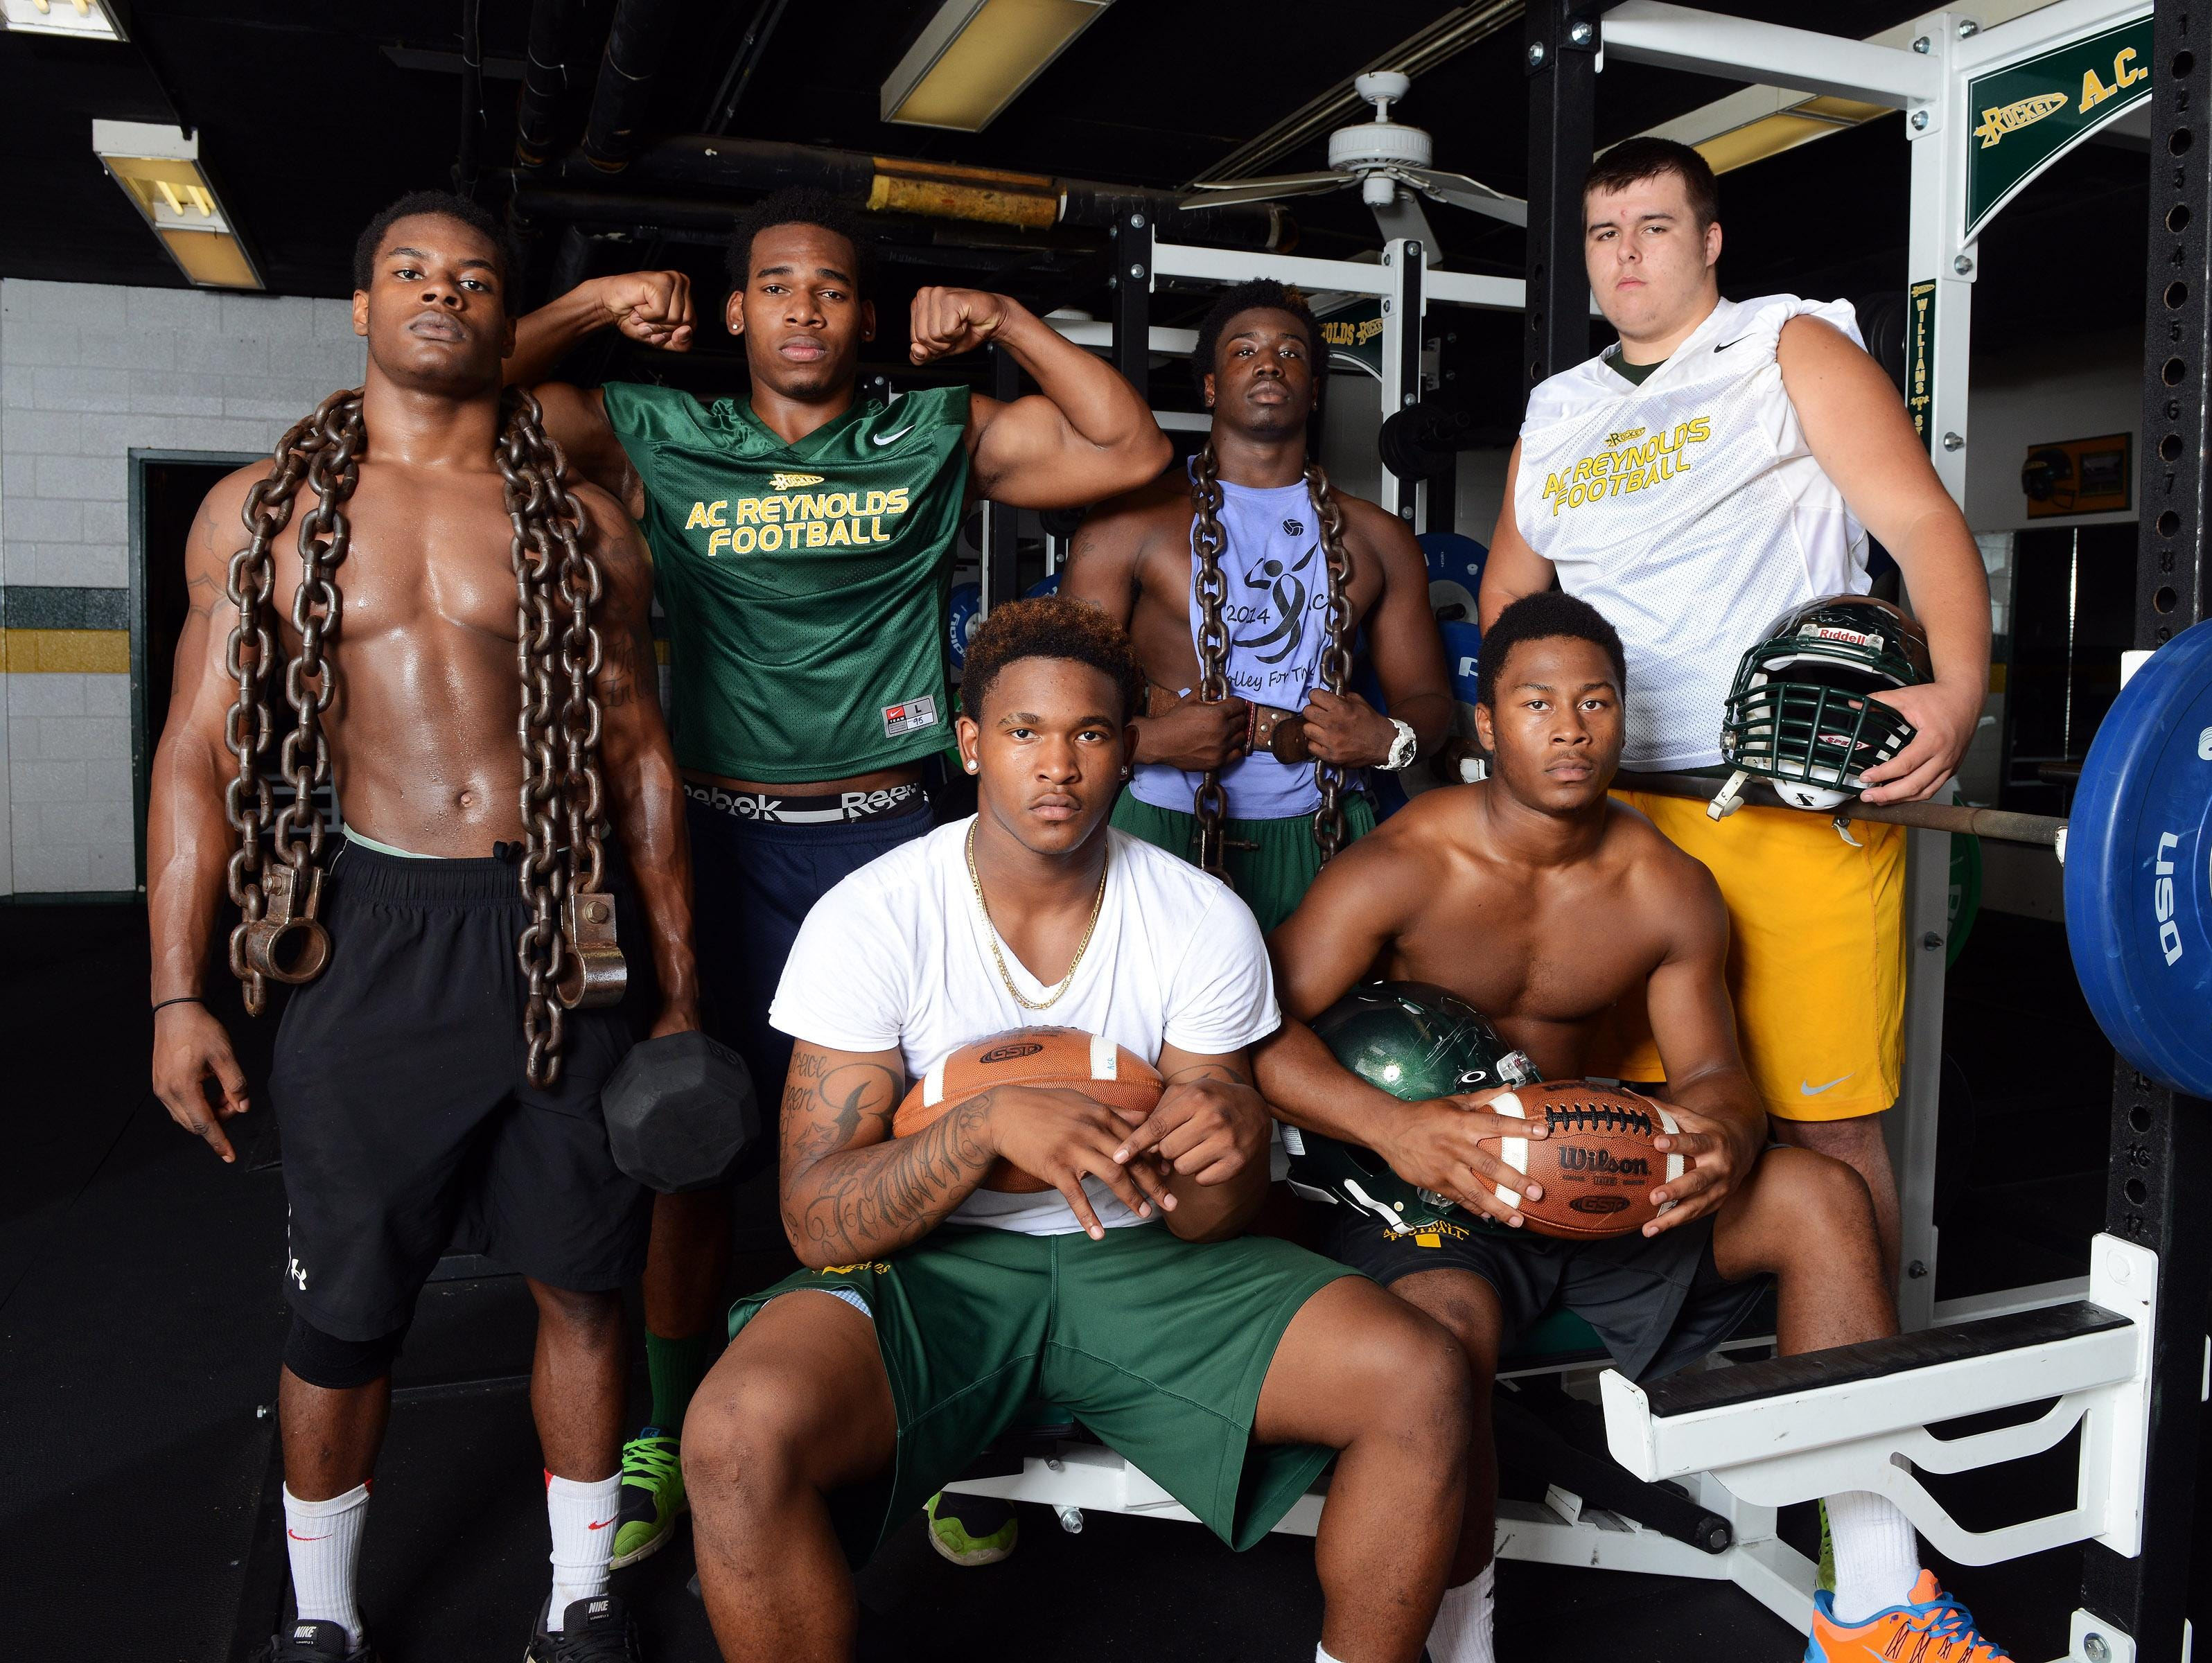 From left to right, Reynolds football players Deshawn Finley, Najae Buchanan, Rico Dowdle, Aundreas Hill, Antonio Logan and Tyler McLaughlin.